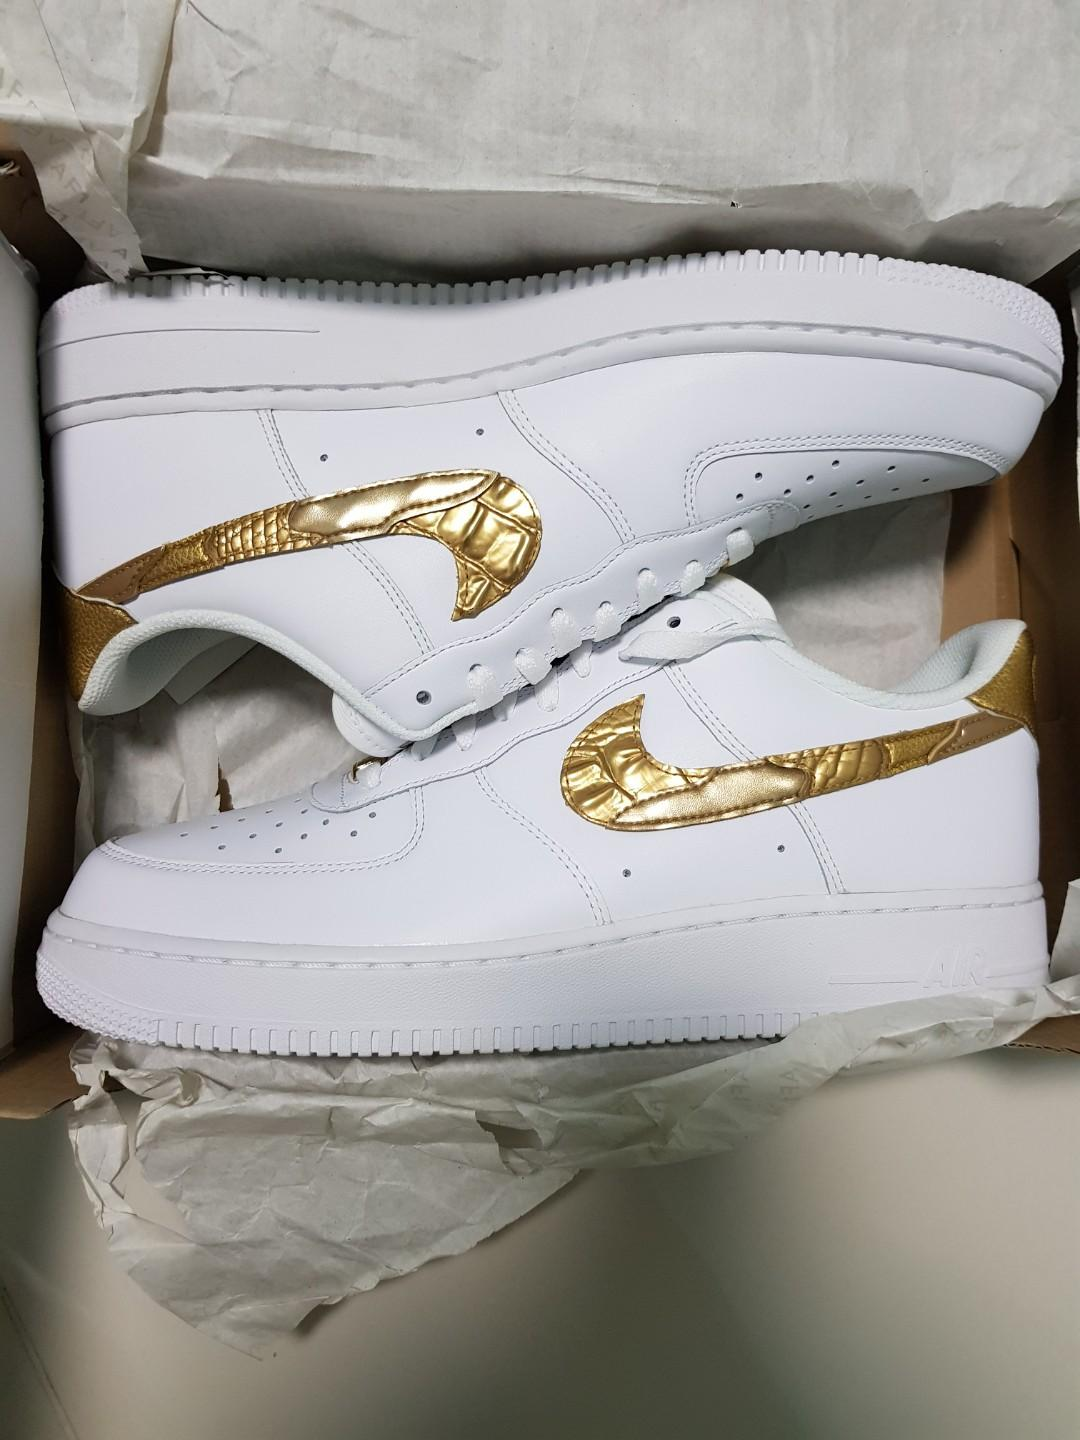 angolo persecuzione pollice  Cristiano Ronaldo X Nike Air Force 1 Low 'Golden Patchwork', Women's  Fashion, Shoes, Sneakers on Carousell